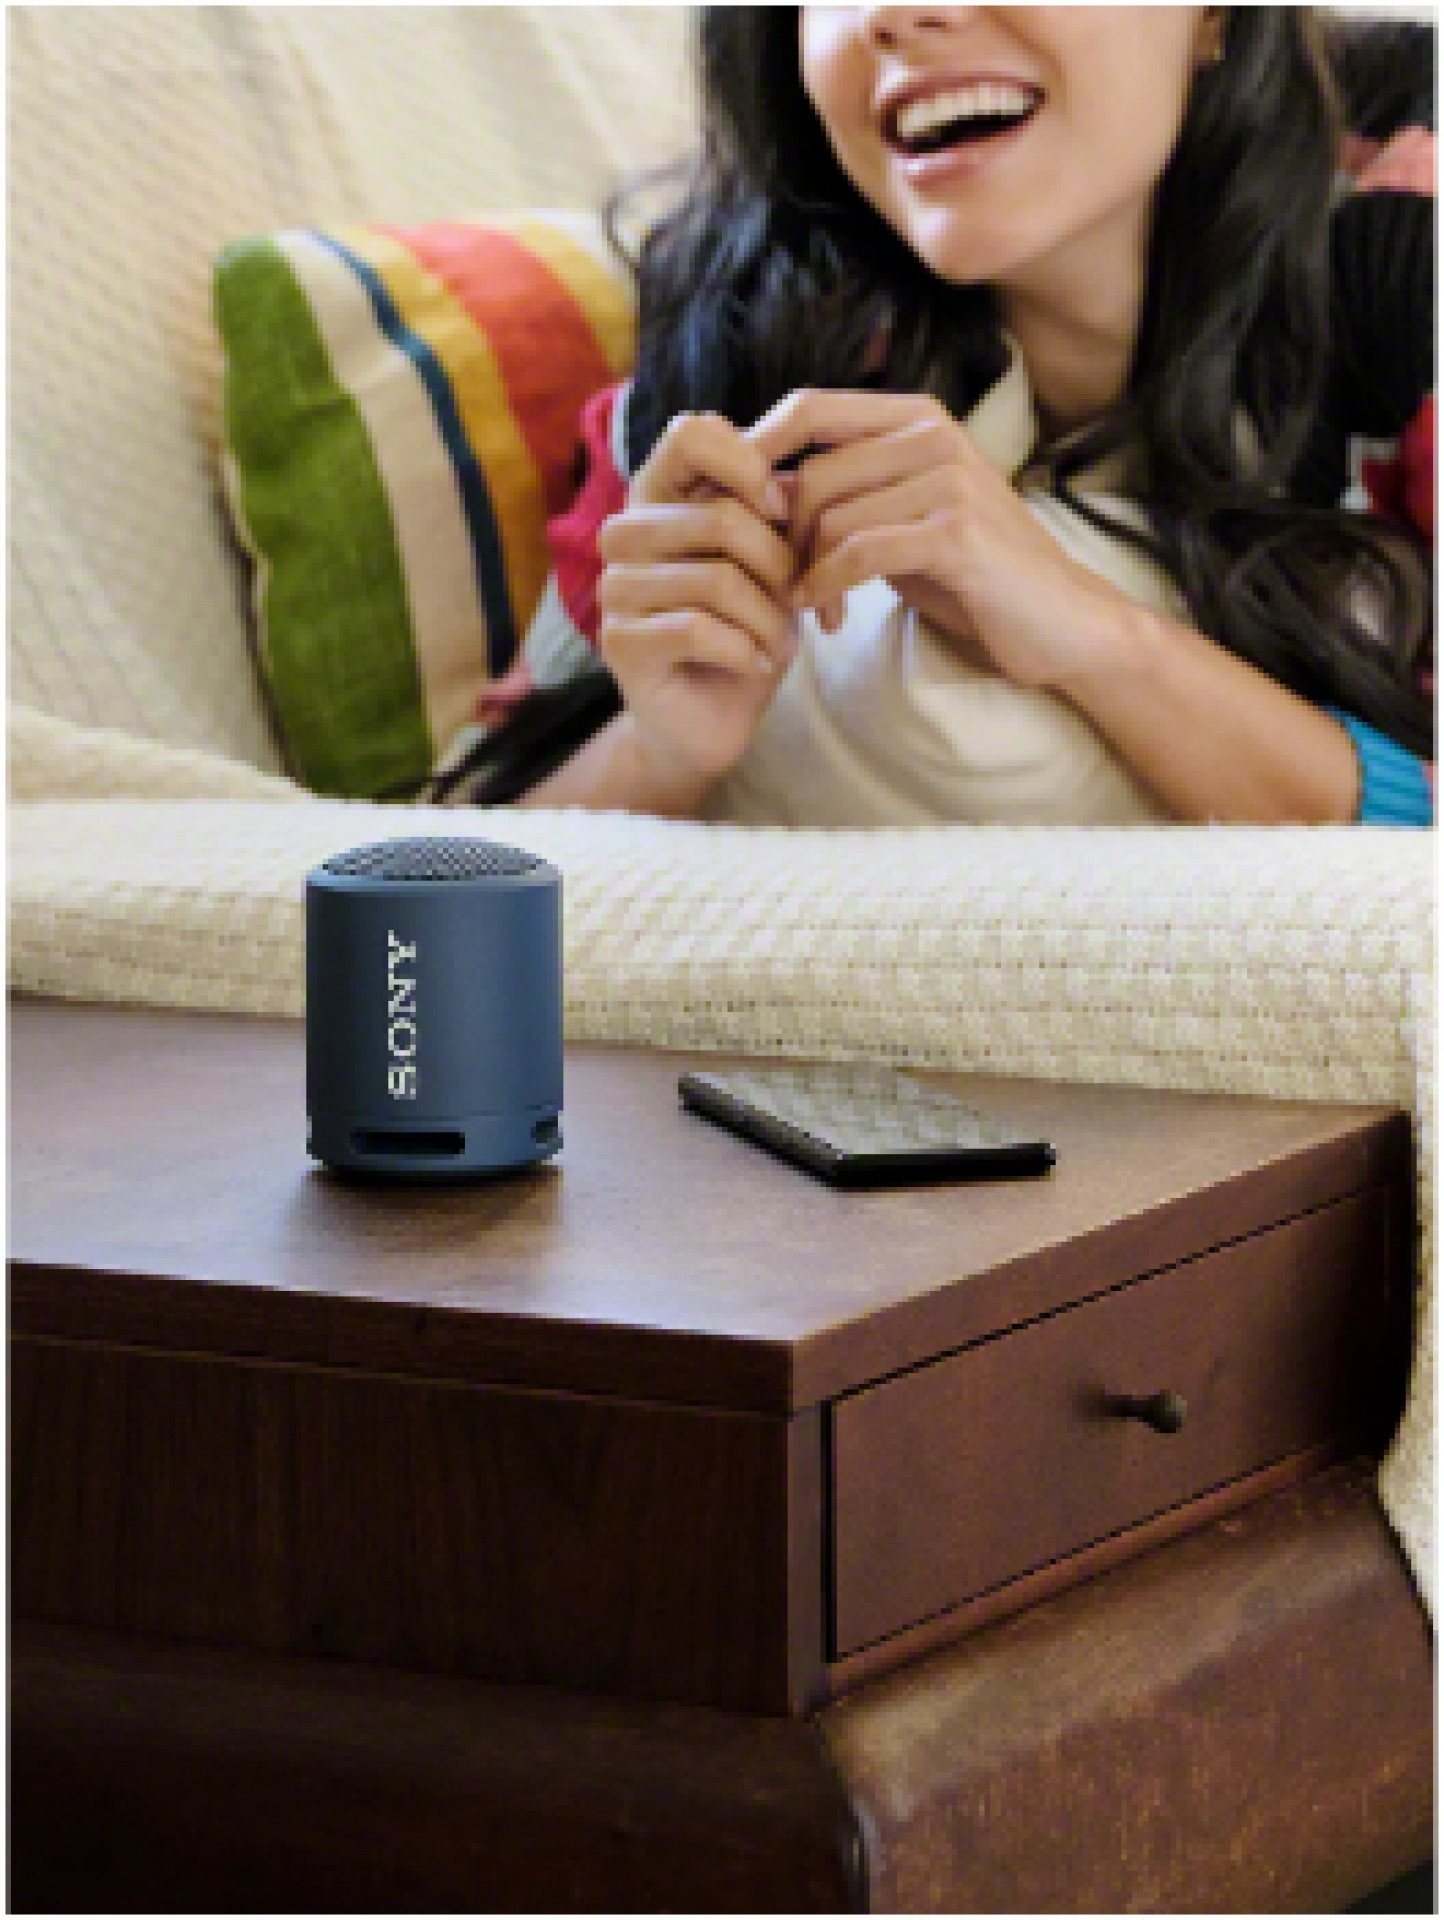 Sony SRS-XB13 Extra Bass Waterproof Bluetooth Portable Speaker, Taupe